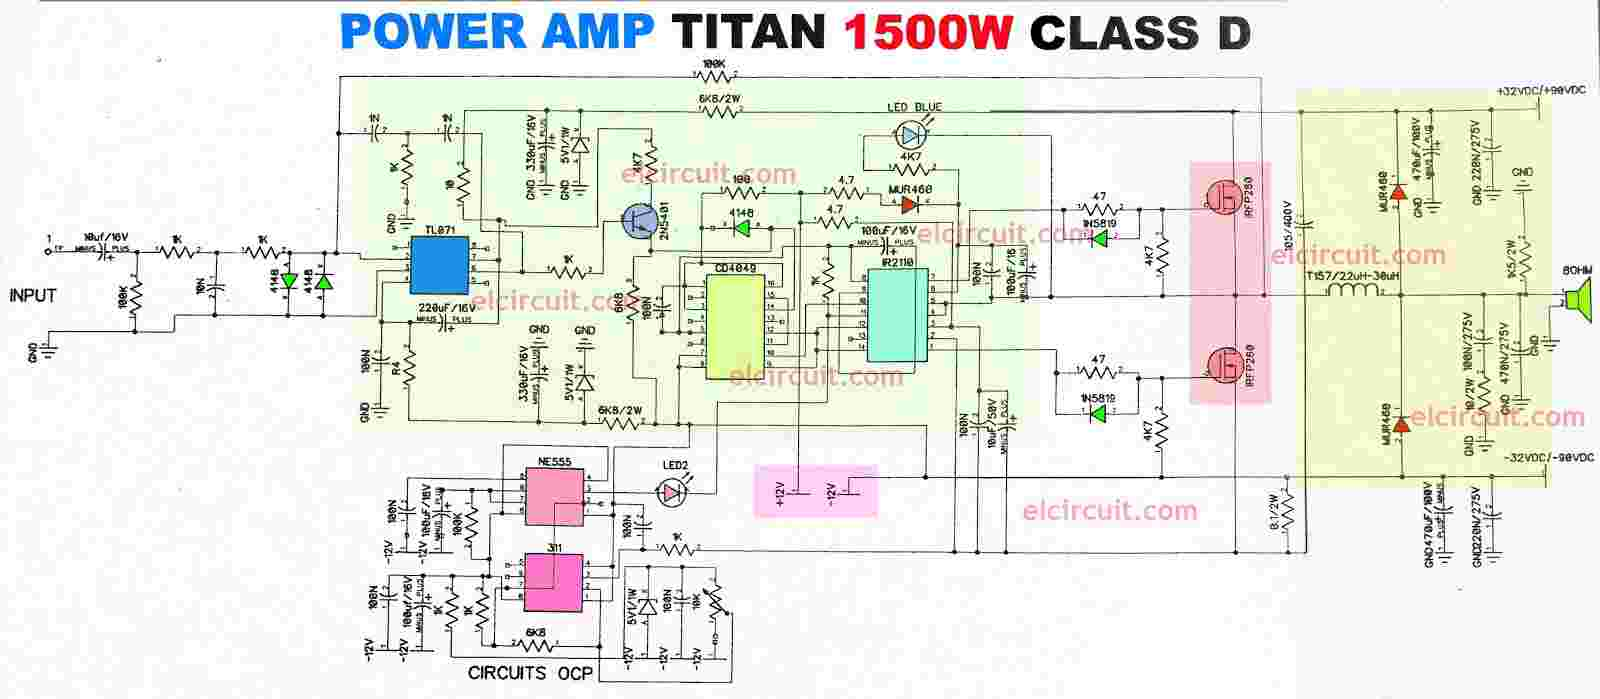 small resolution of high power amplifier circuit diagram class d titan